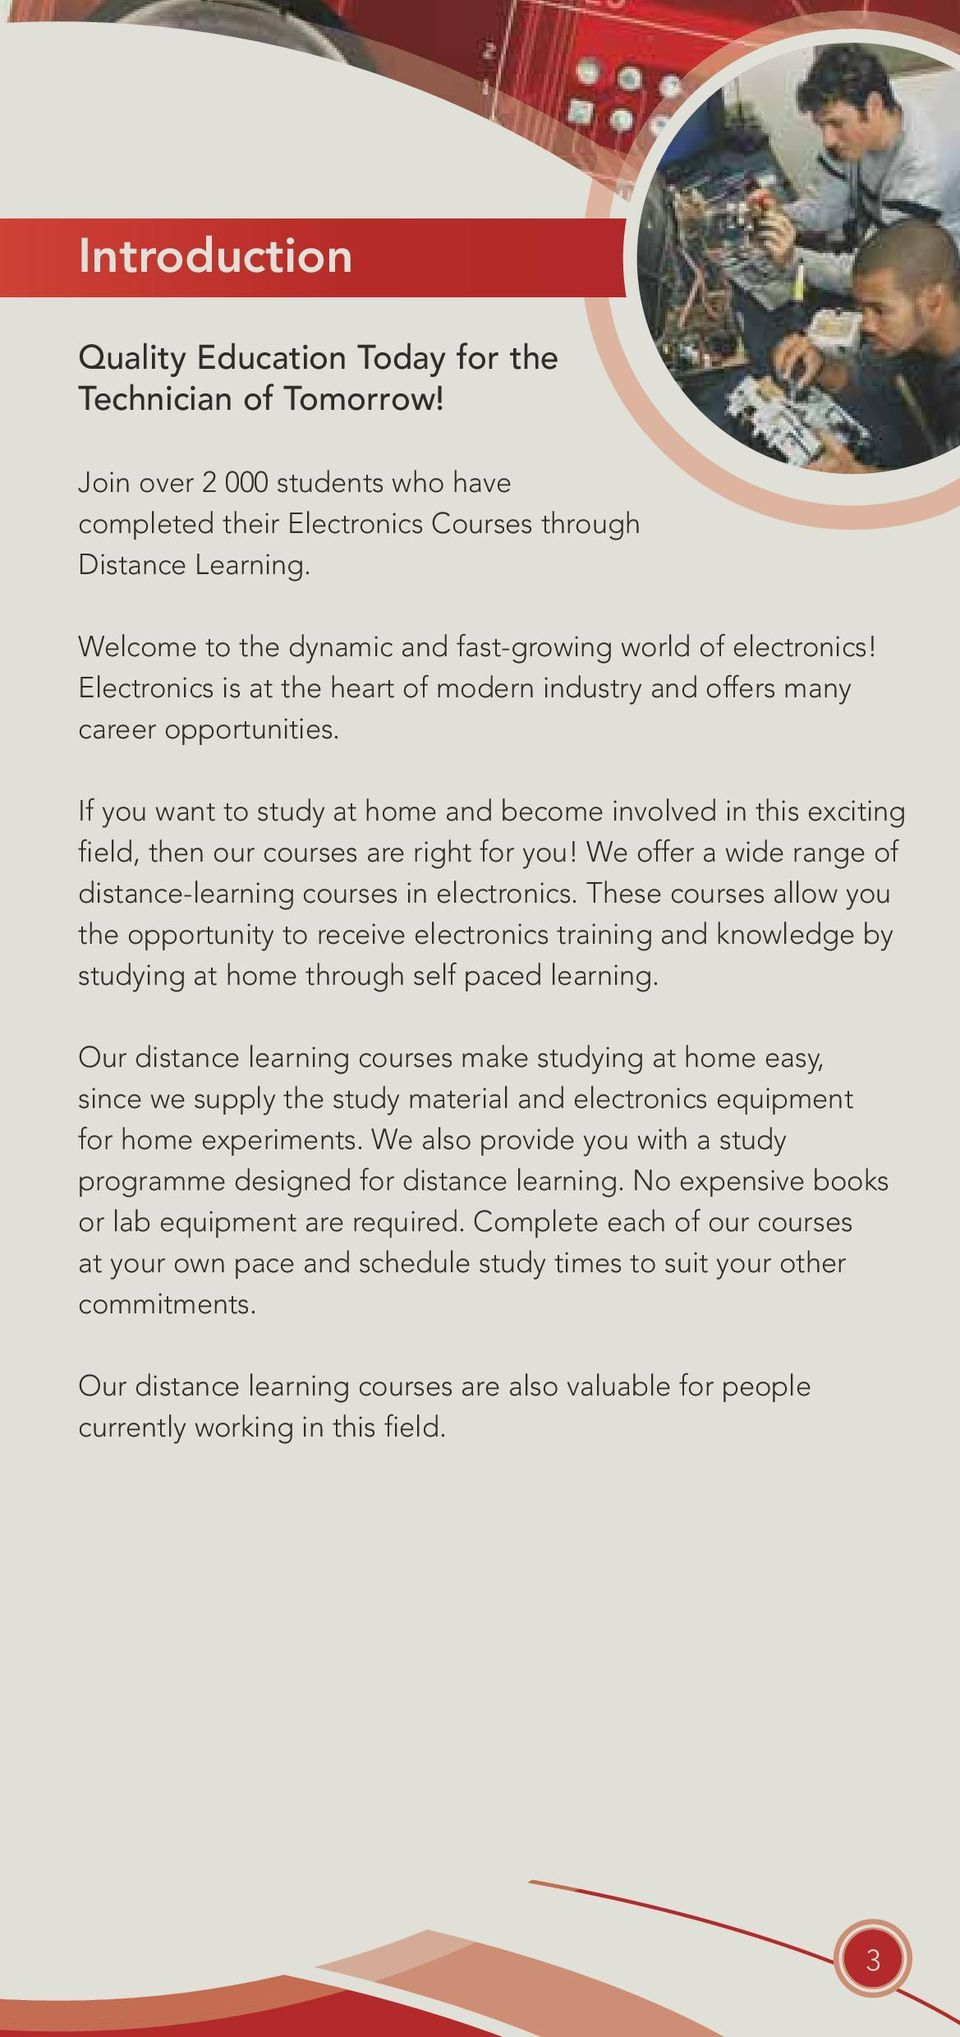 If you want to study at home and become involved in this exciting field, then our courses are right for you! We offer a wide range of distance-learning courses in electronics.